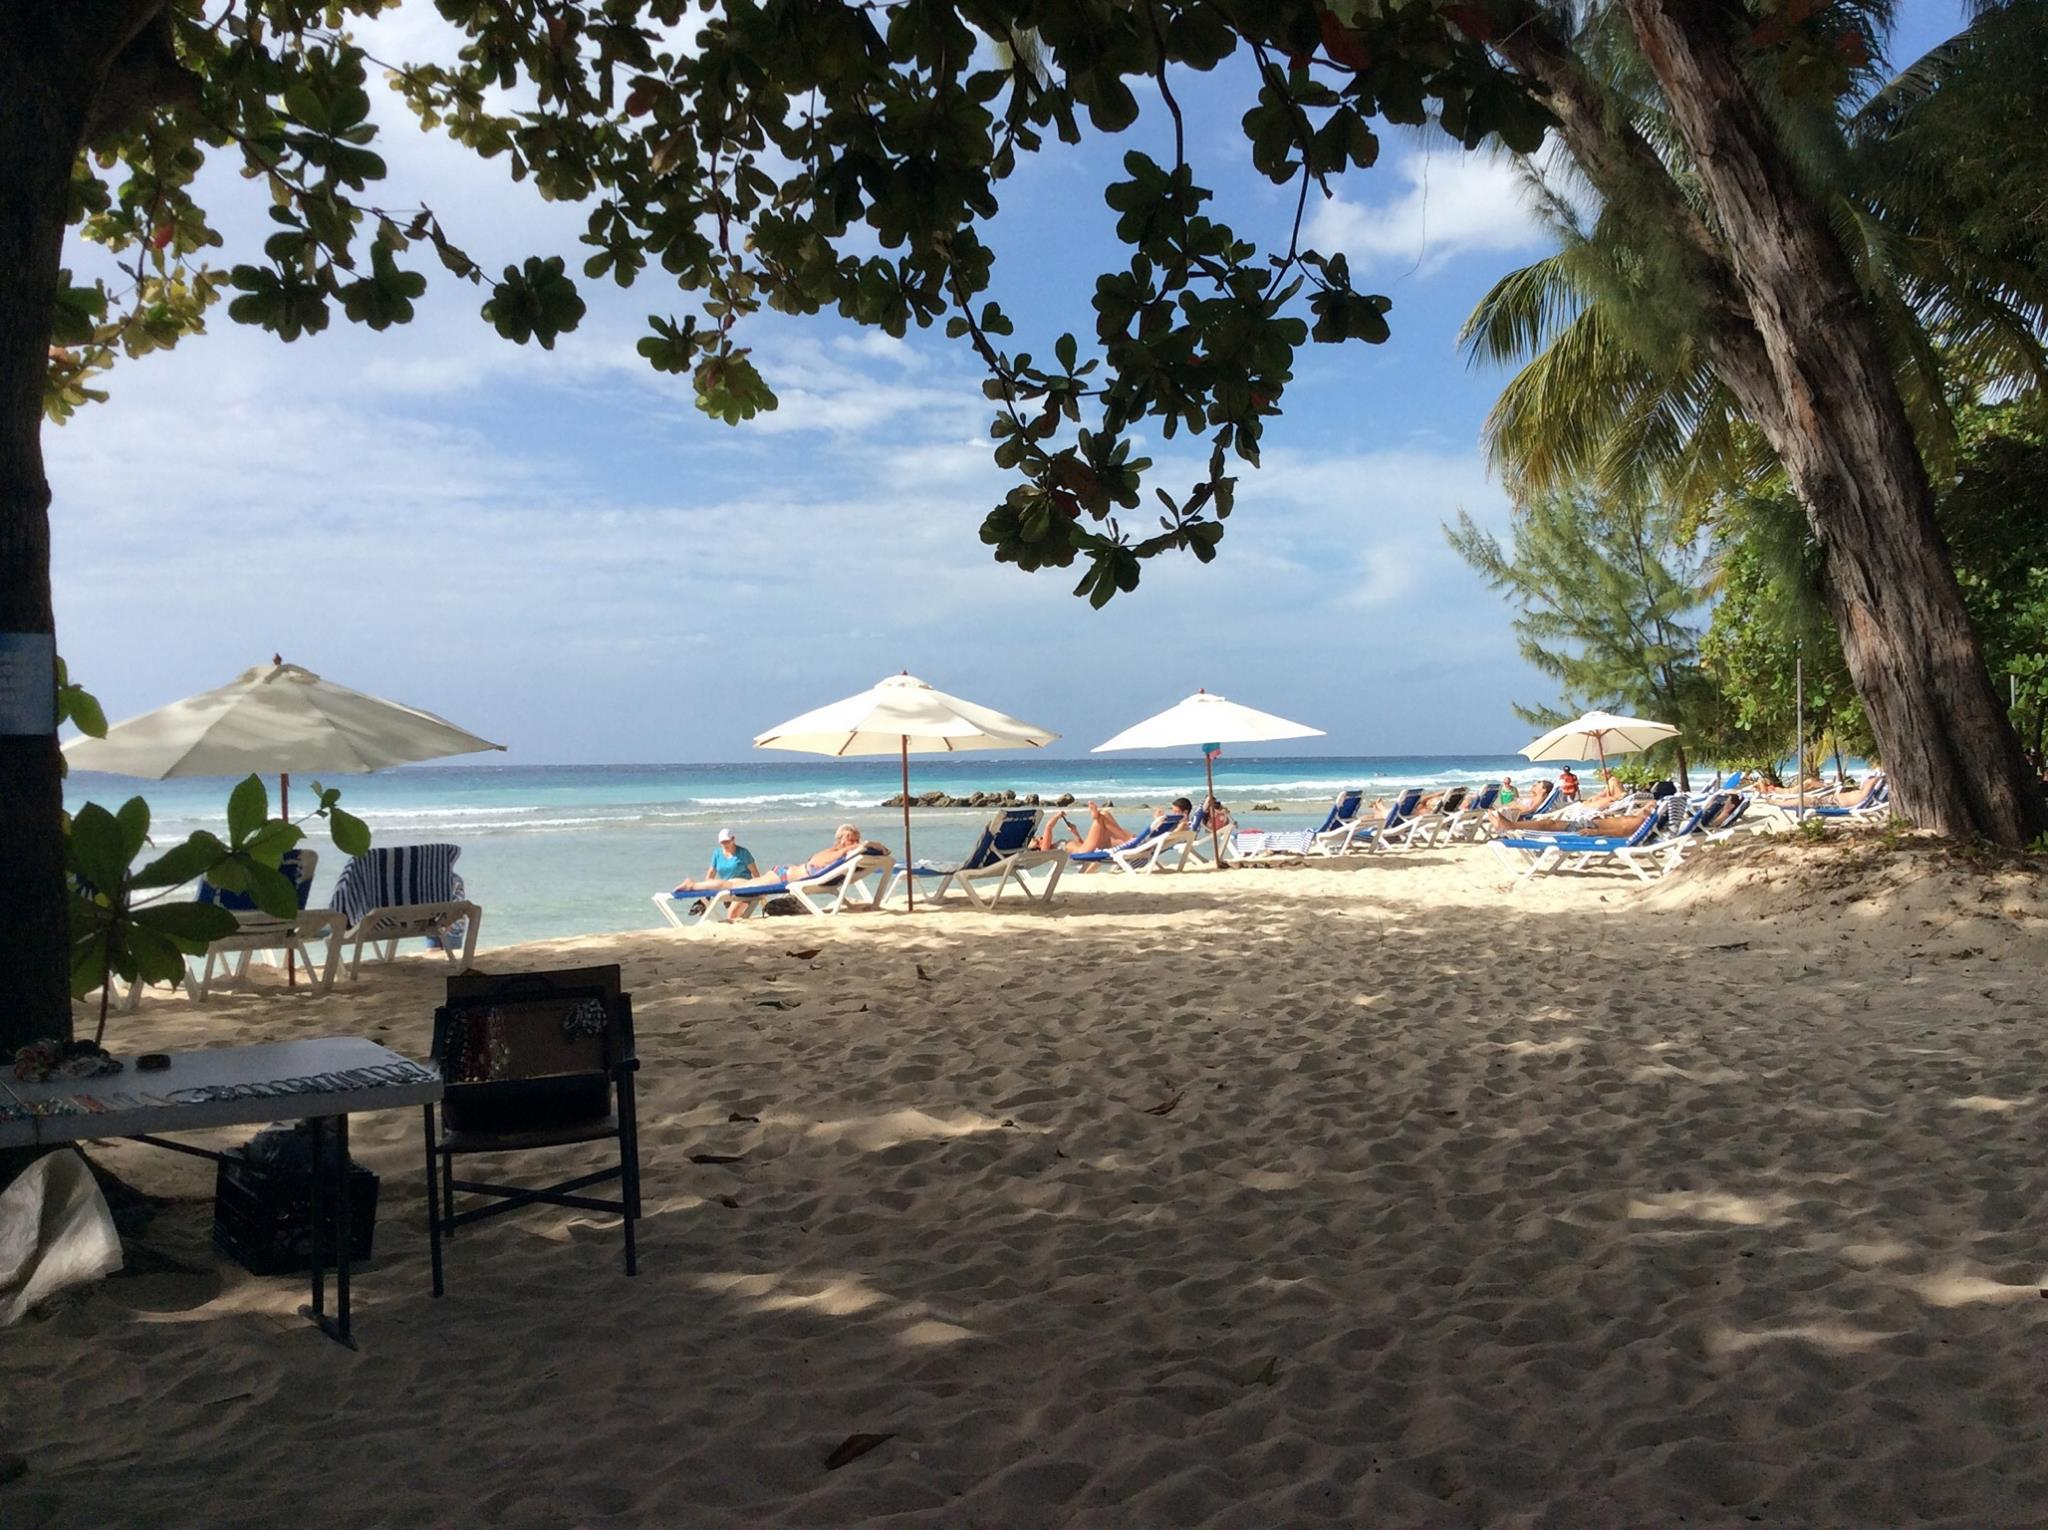 Savannah Beach Hotel Barbados Reviews